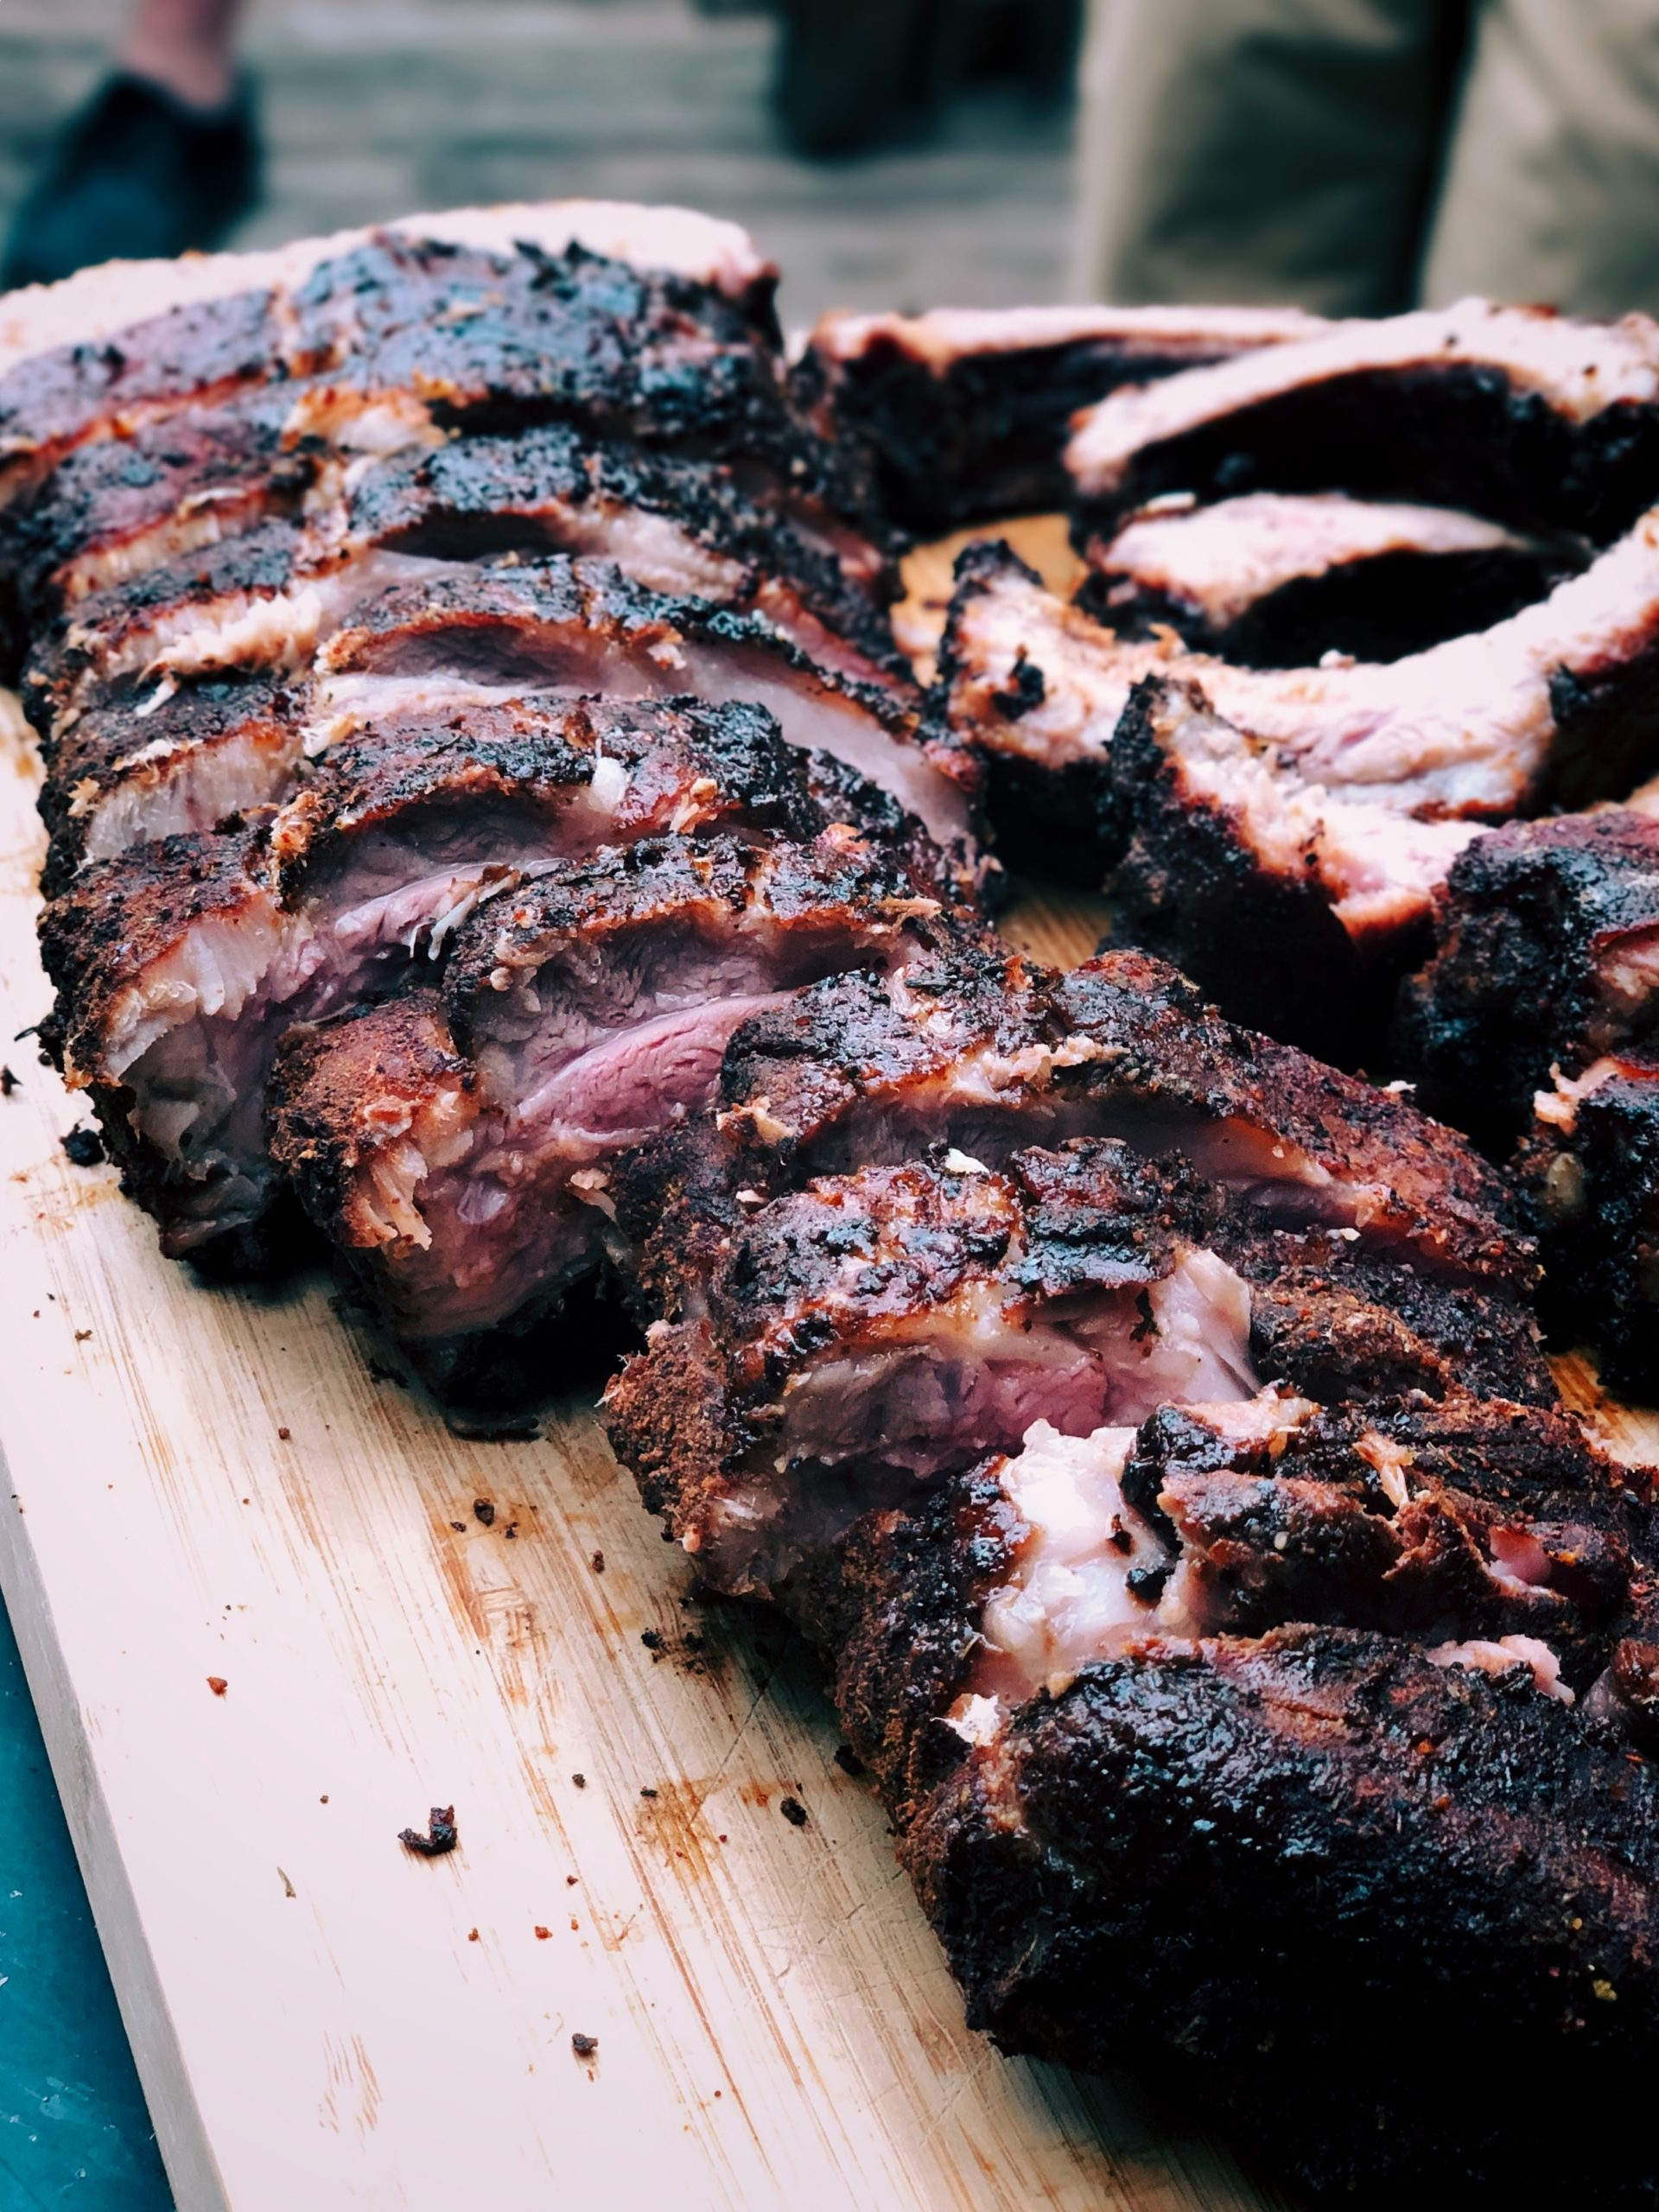 Meat Causes Cancer – The Counter Argument.